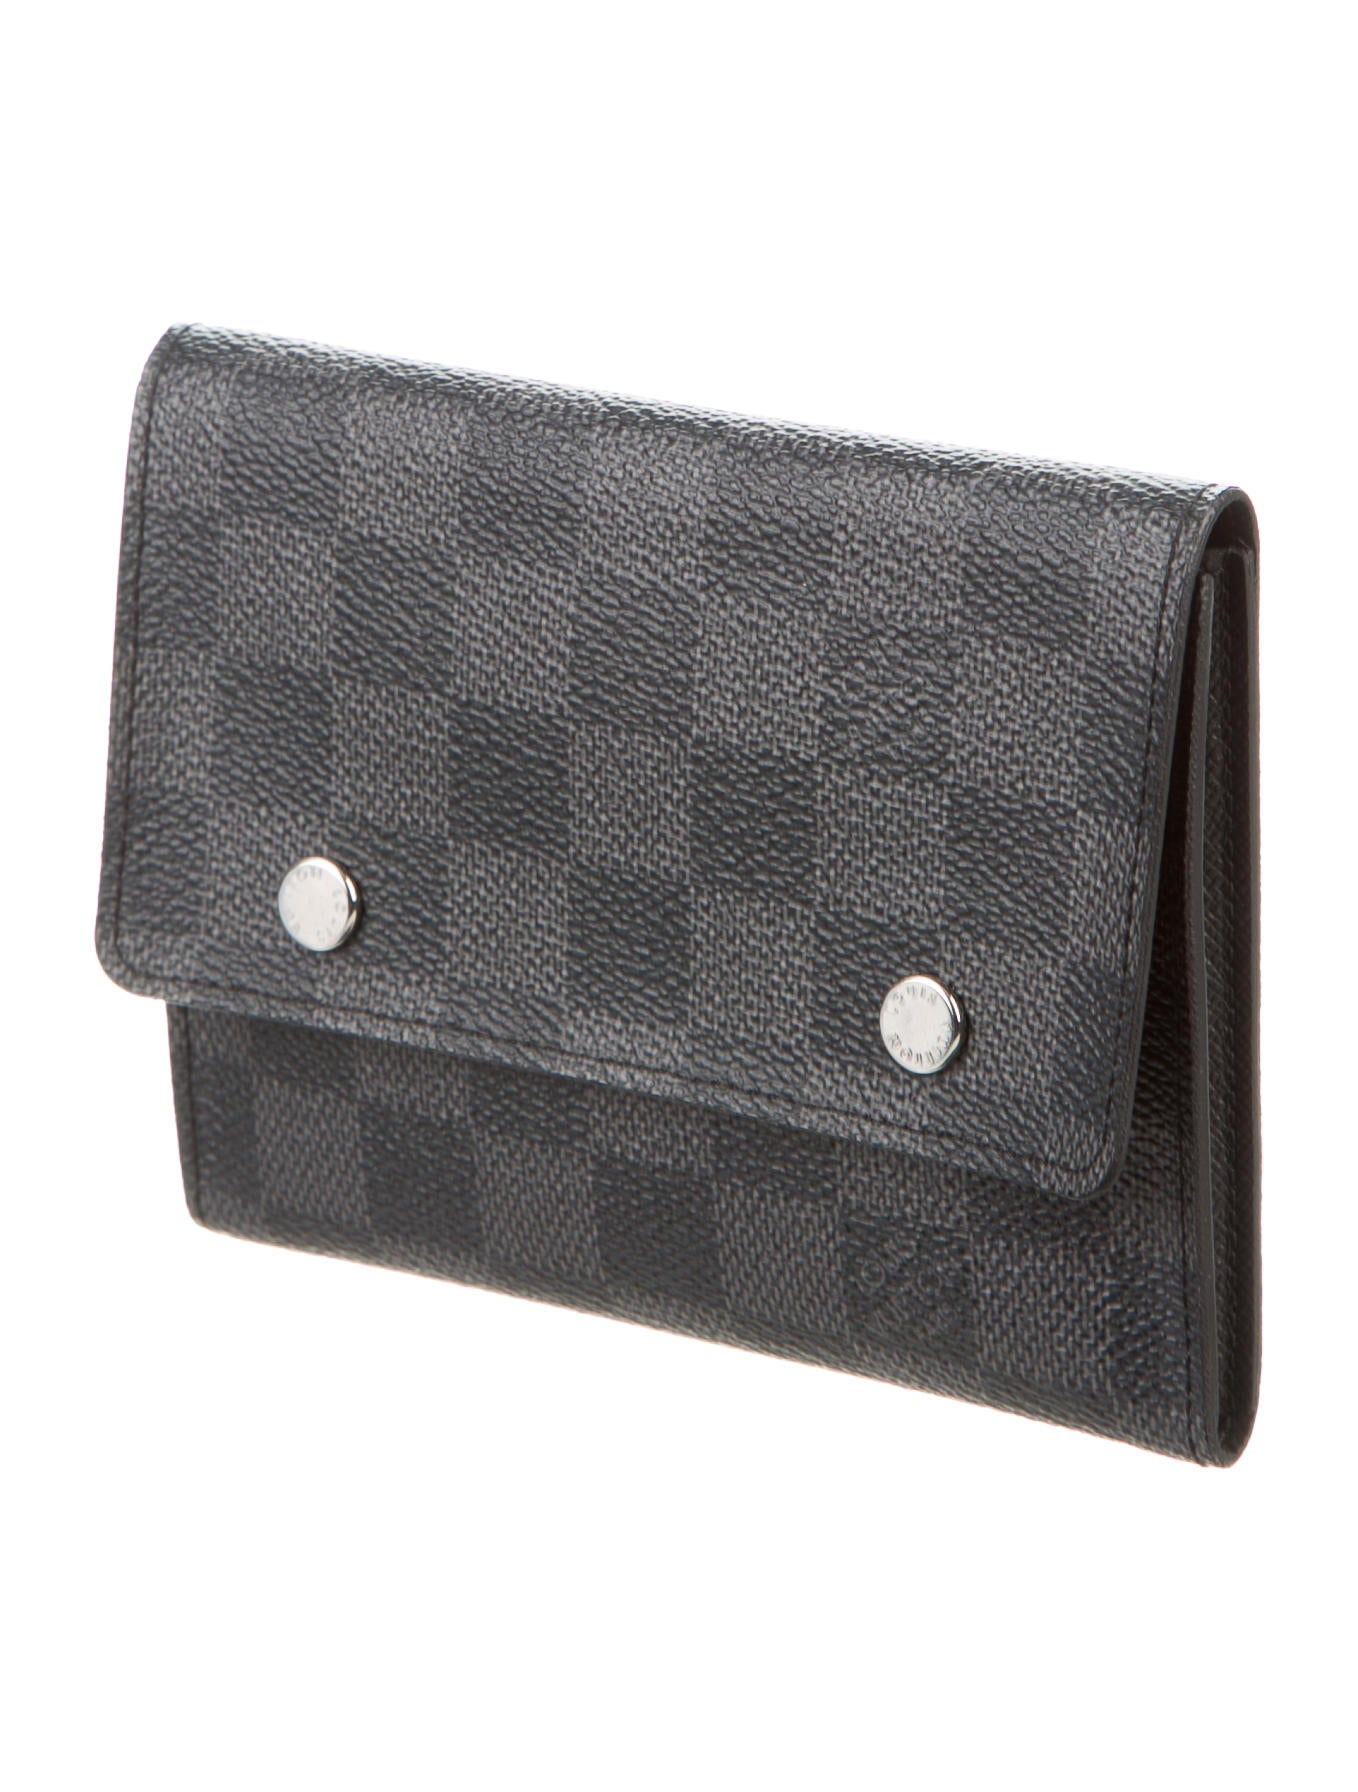 GQX33 Slim Leather Billfold Damier Ebene Wallet